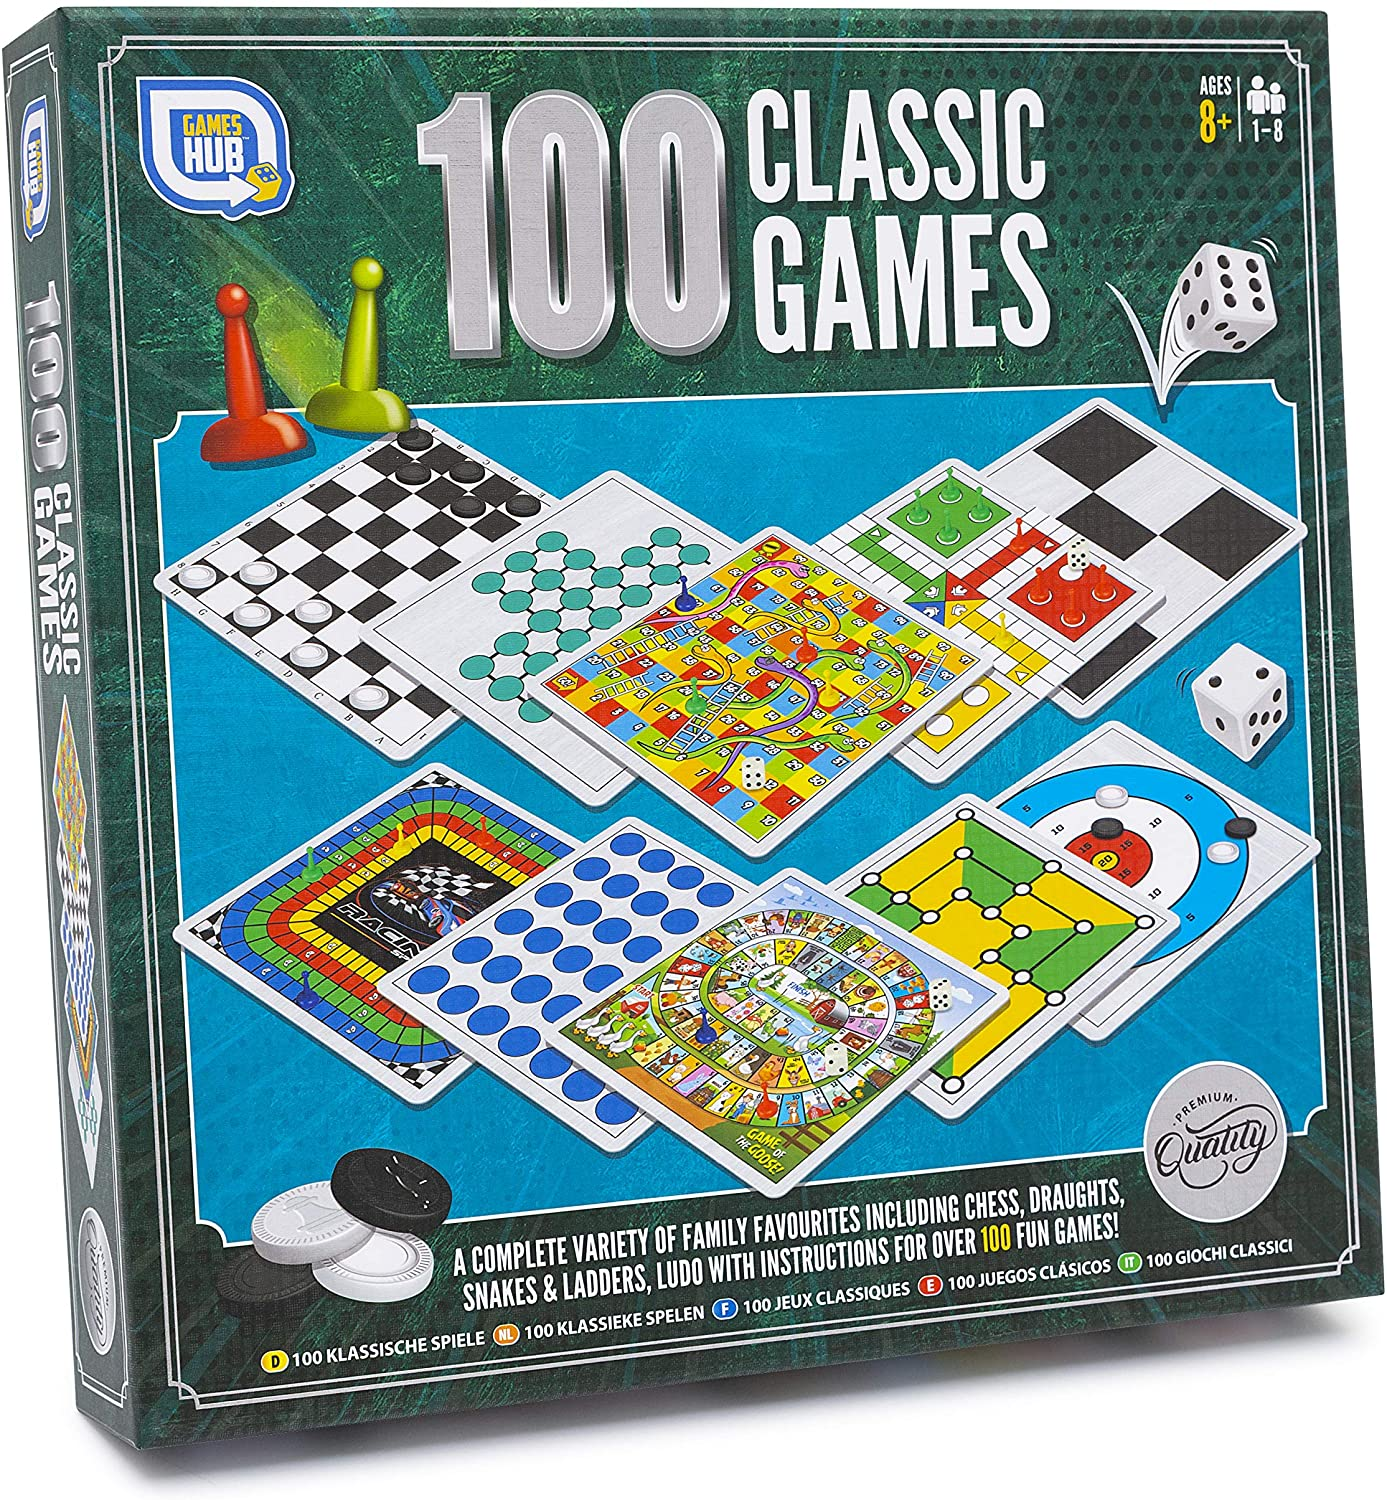 RMS Classic Games